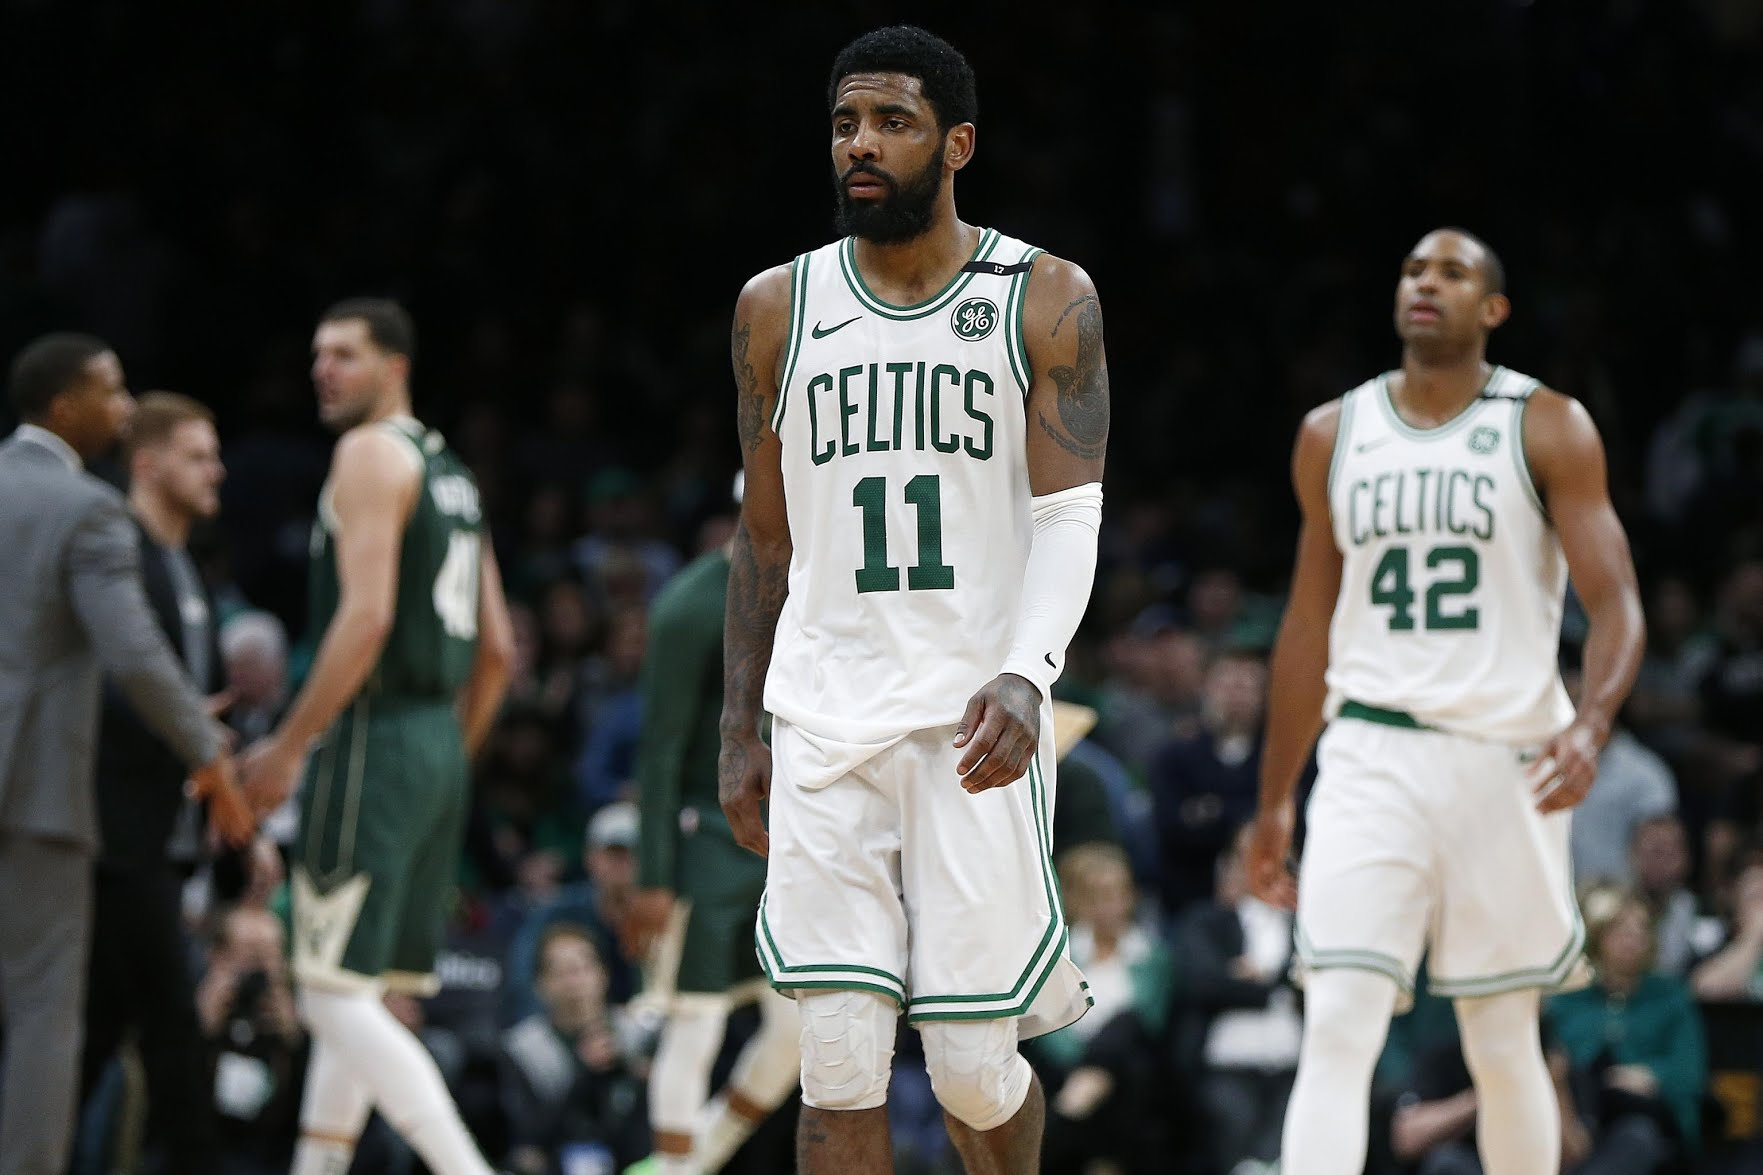 https://podcasts.apple.com/us/podcast/celtics-weekly-post-up/id1460068497